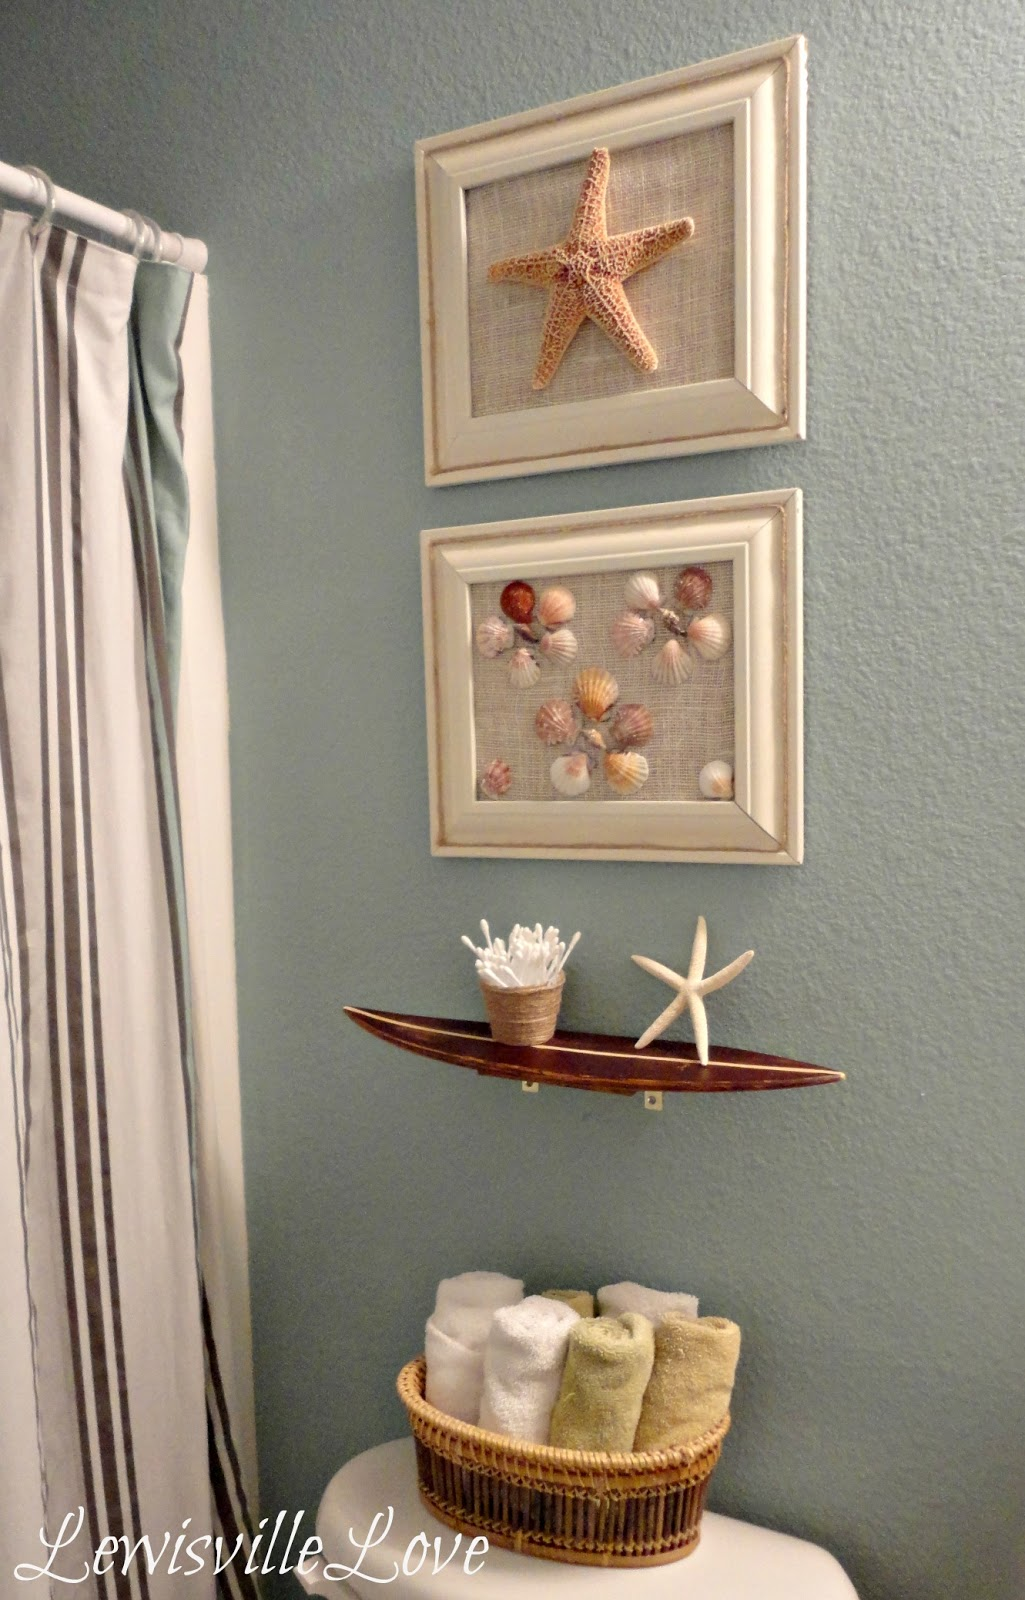 Lewisville love beach theme bathroom reveal for Bathroom motif ideas